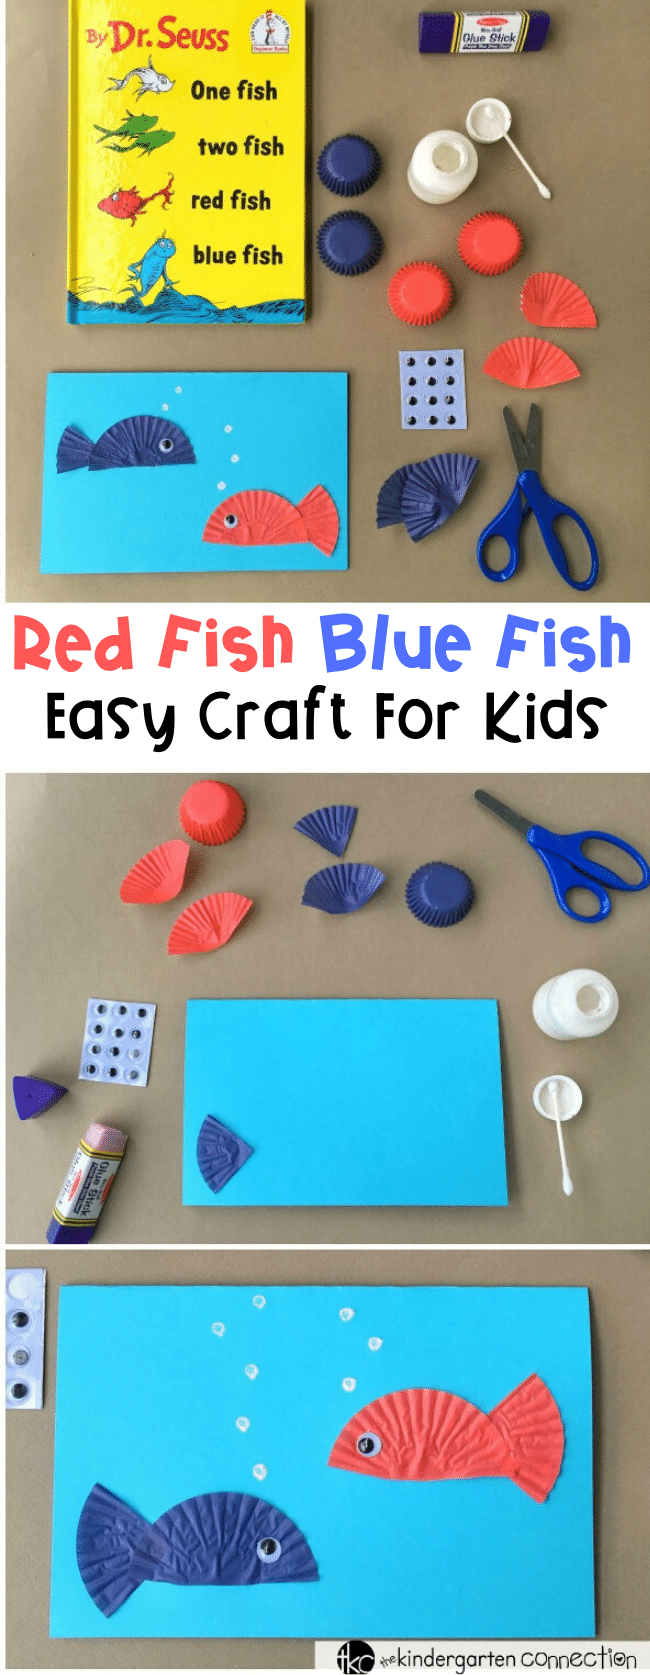 """This Dr. Seuss day craft is perfect for after reading """"One Fish Two Fish Red Fish Blue Fish!"""" Make a fun card and work on writing skills as well! #readingacrossamerica #drseussday #drseusscraft #craftsforkids"""